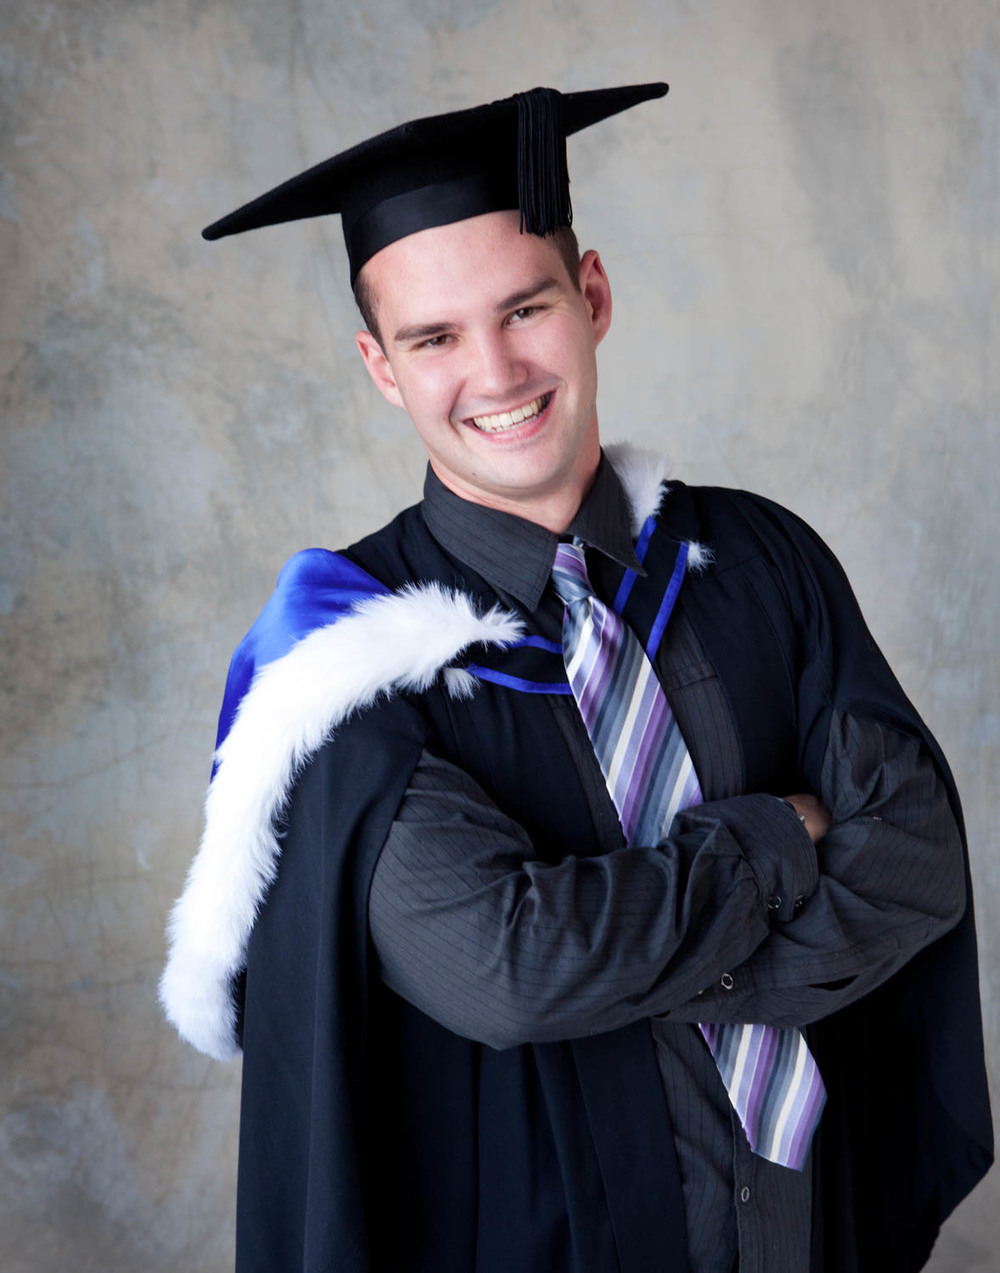 Graduation_Photographer_Auckland_17873_7023.jpg